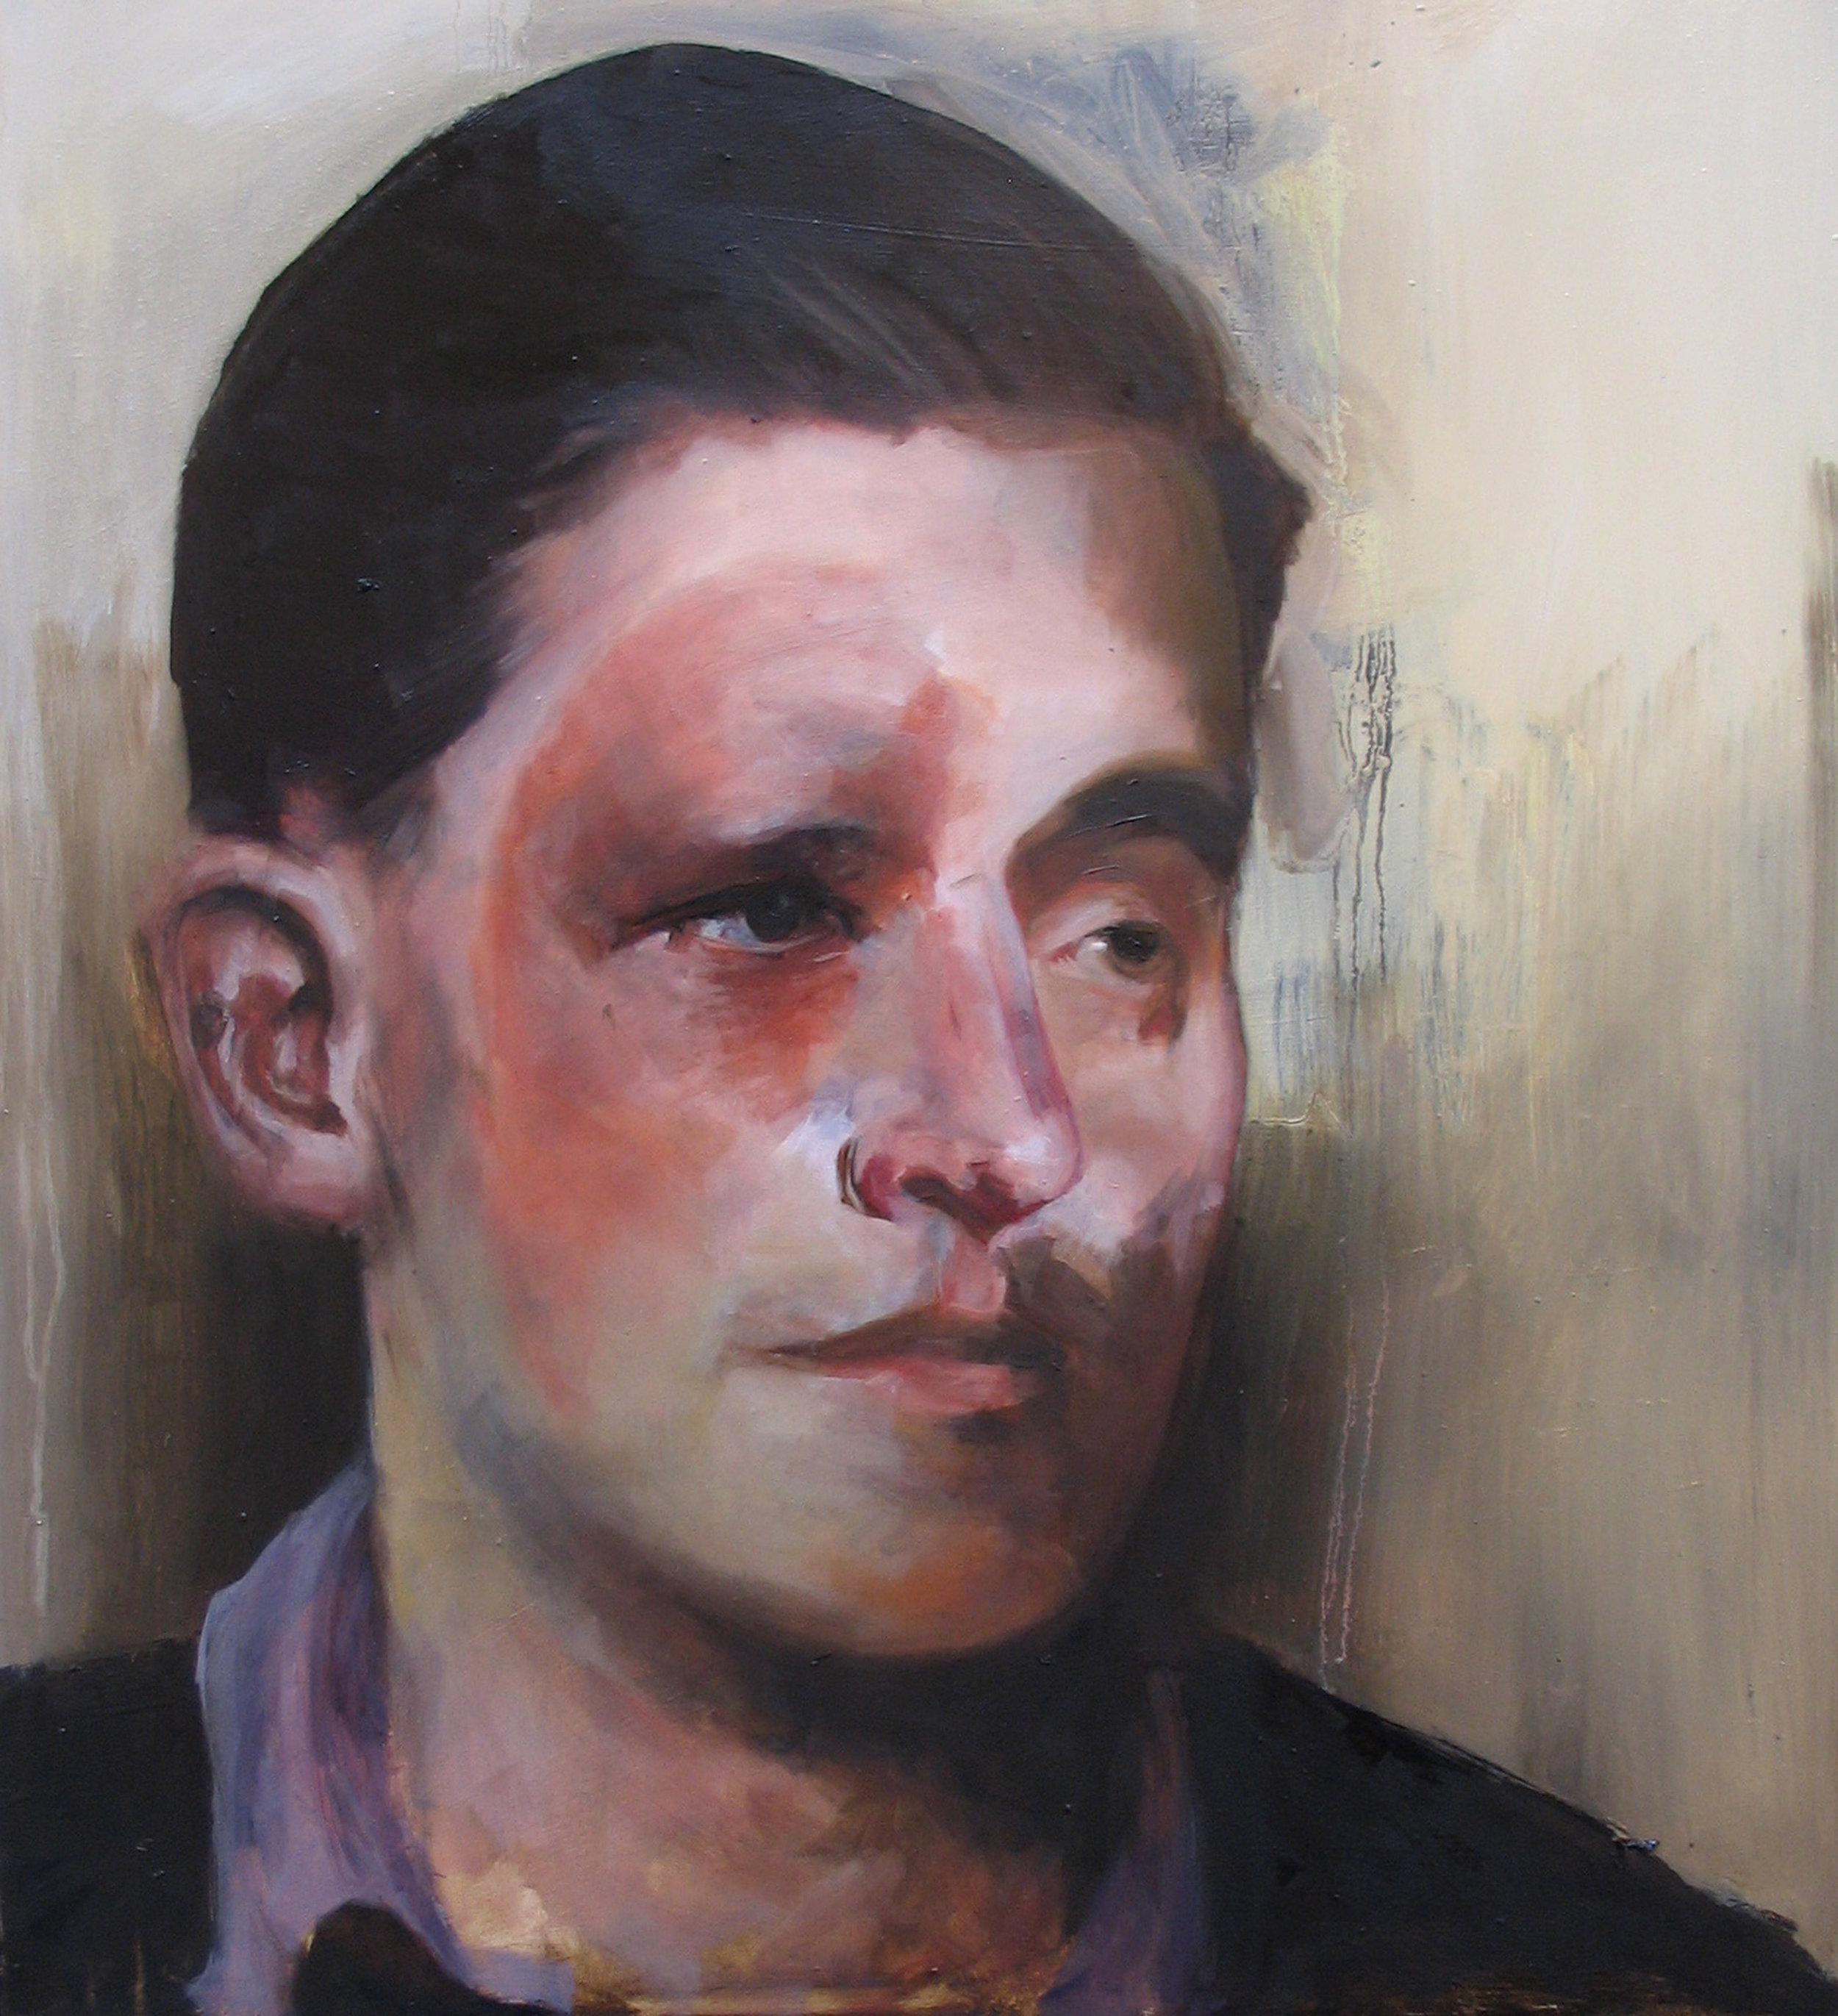 'Robert Manners', 2008, Oil on Board, 55 x 50cm. Image courtesy the artist.